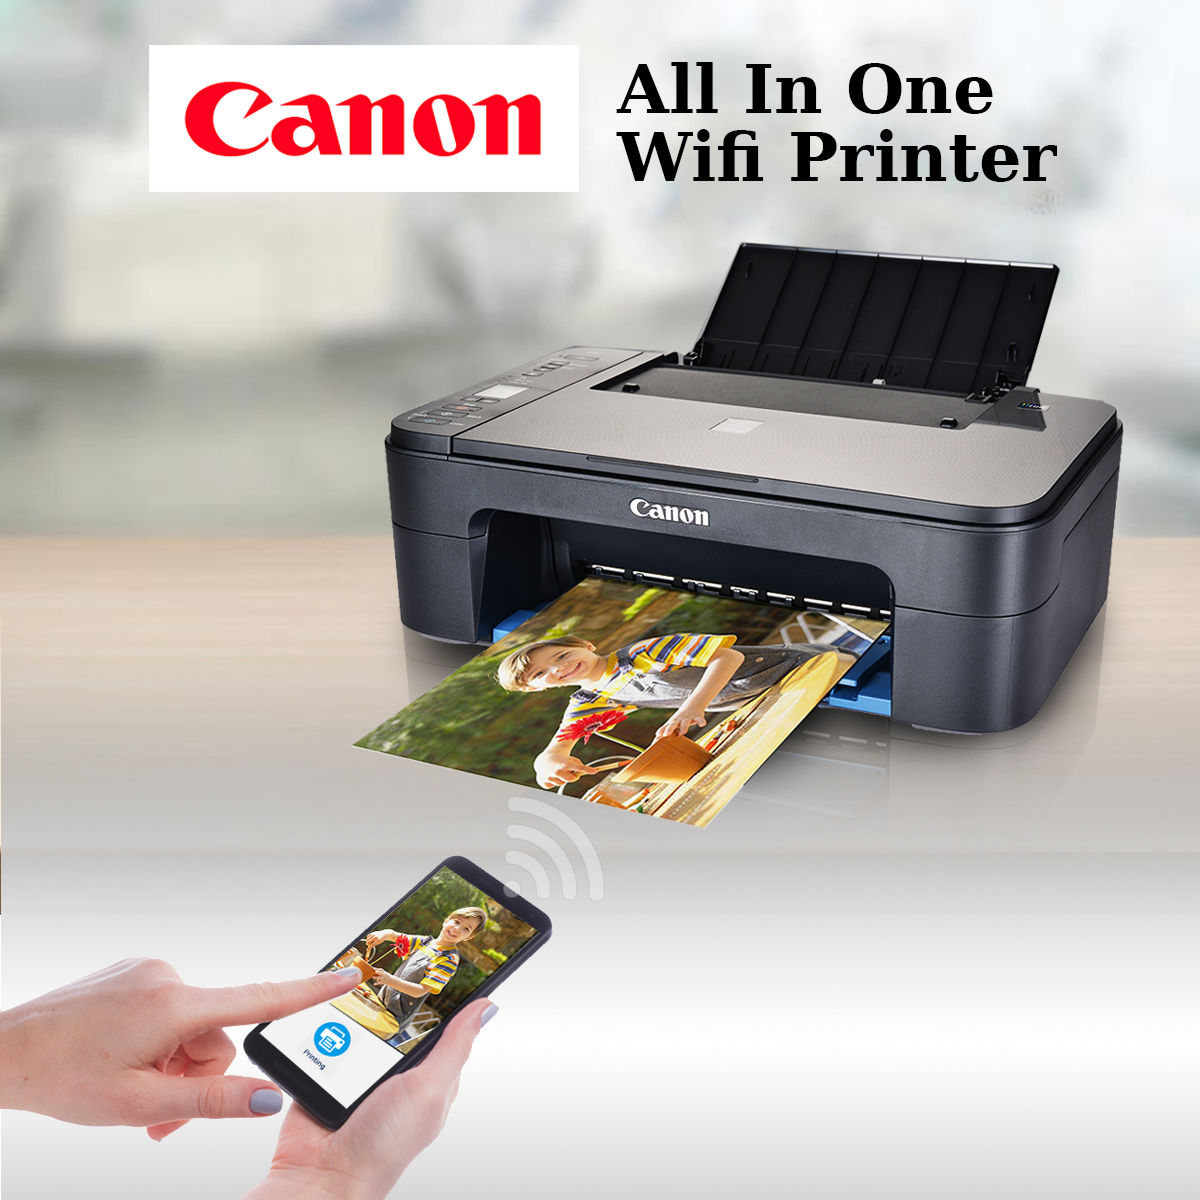 Buy Canon All In One Wi Fi Printer Online At Best Price In